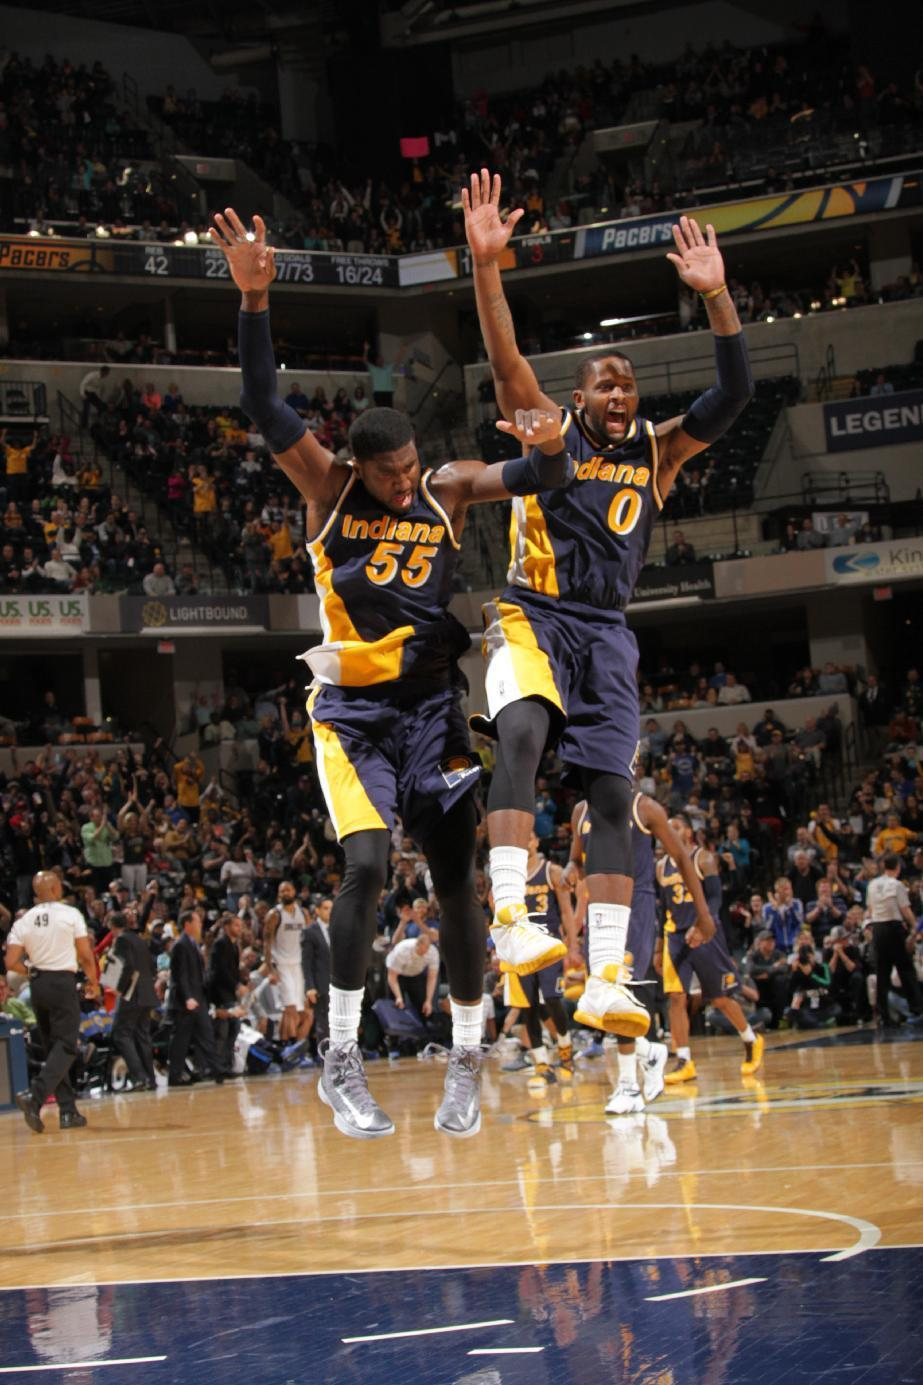 Pacers get back in playoff chase with 104-99 win over Dallas